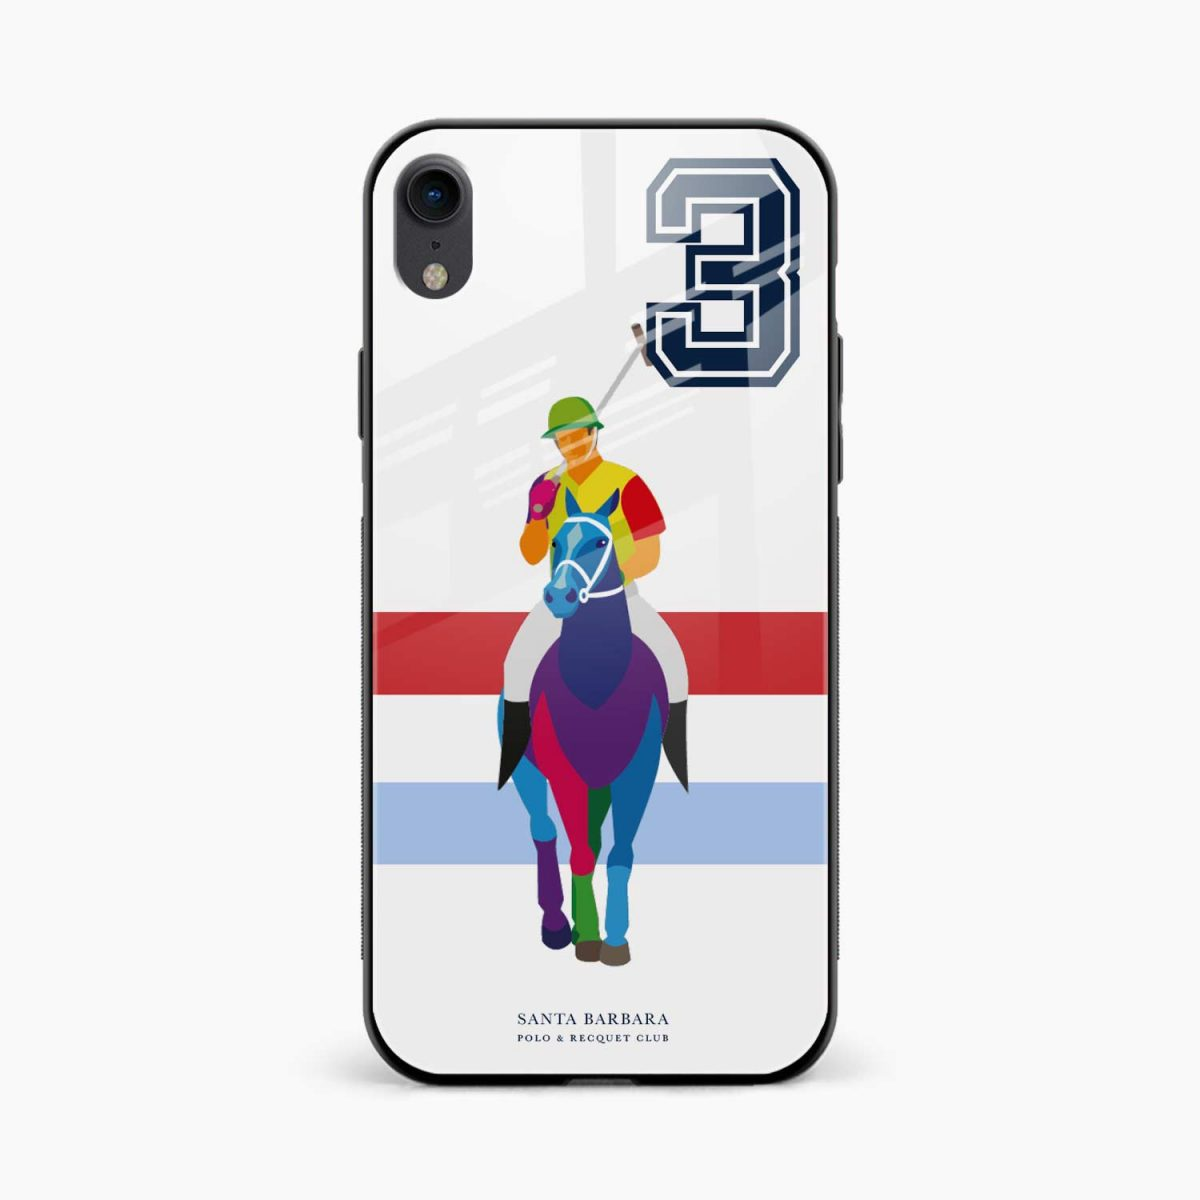 multicolor sant barbara polo apple iphone xr back cover front view